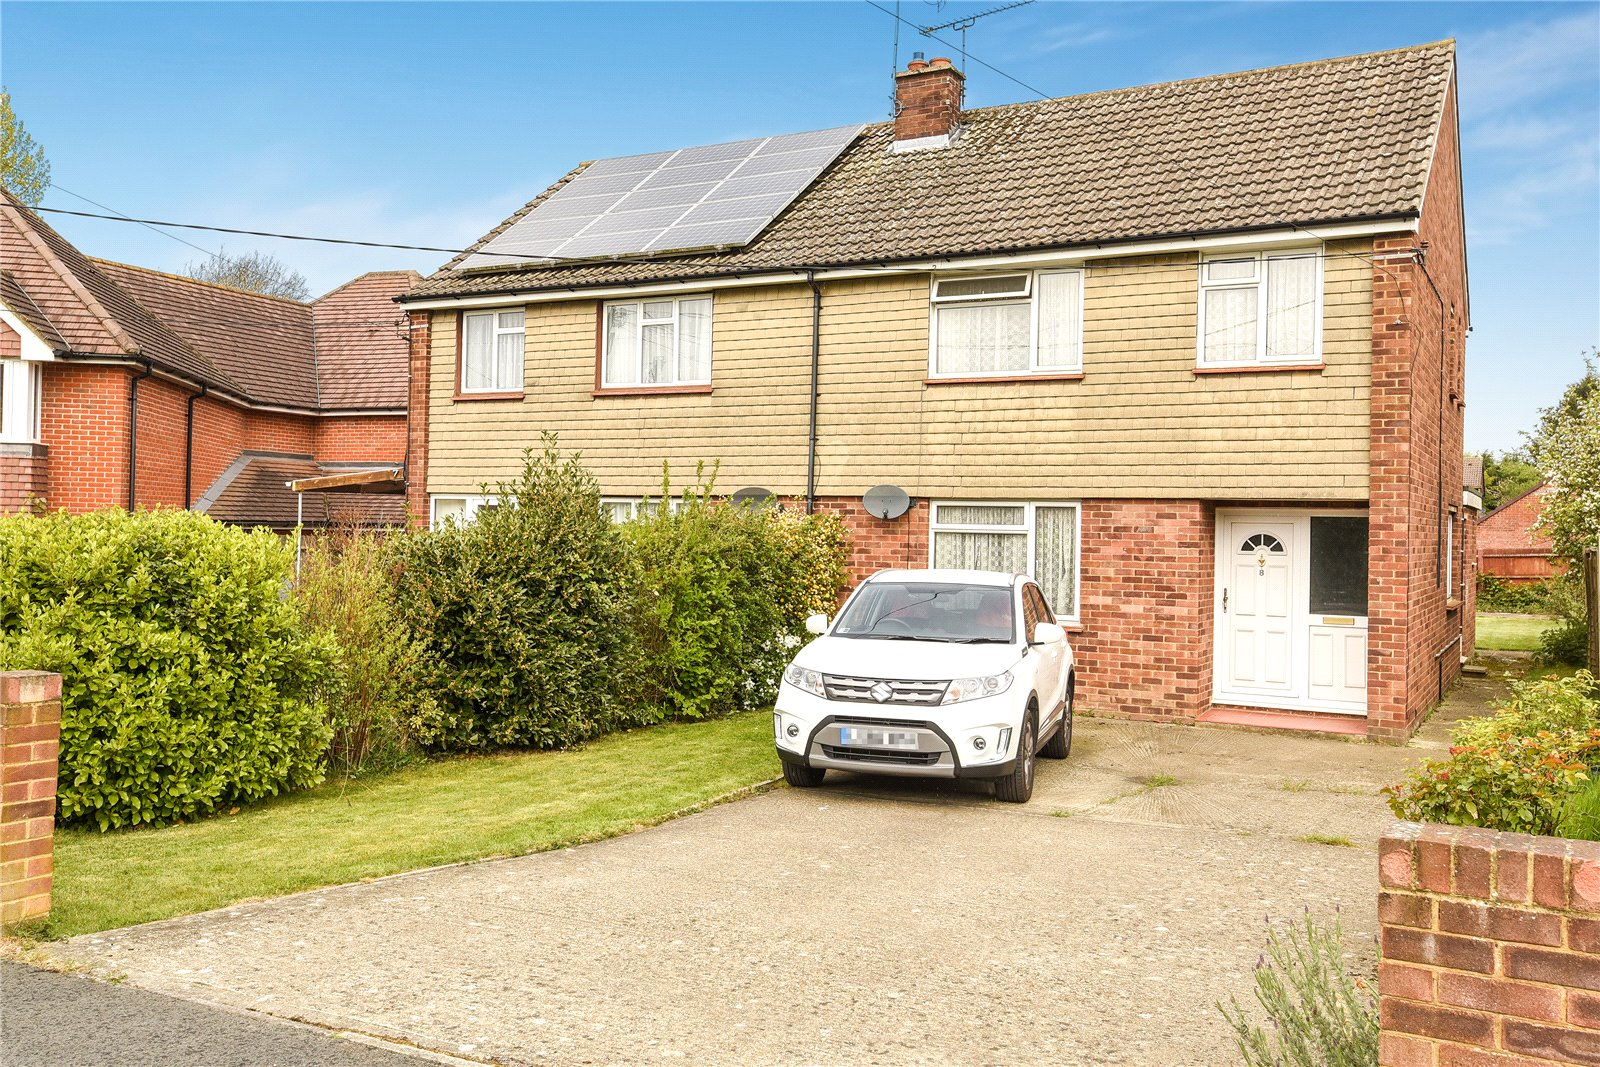 3 Bedrooms Semi Detached House for sale in Roebuck Estate, Binfield, Bracknell, Berkshire, RG42